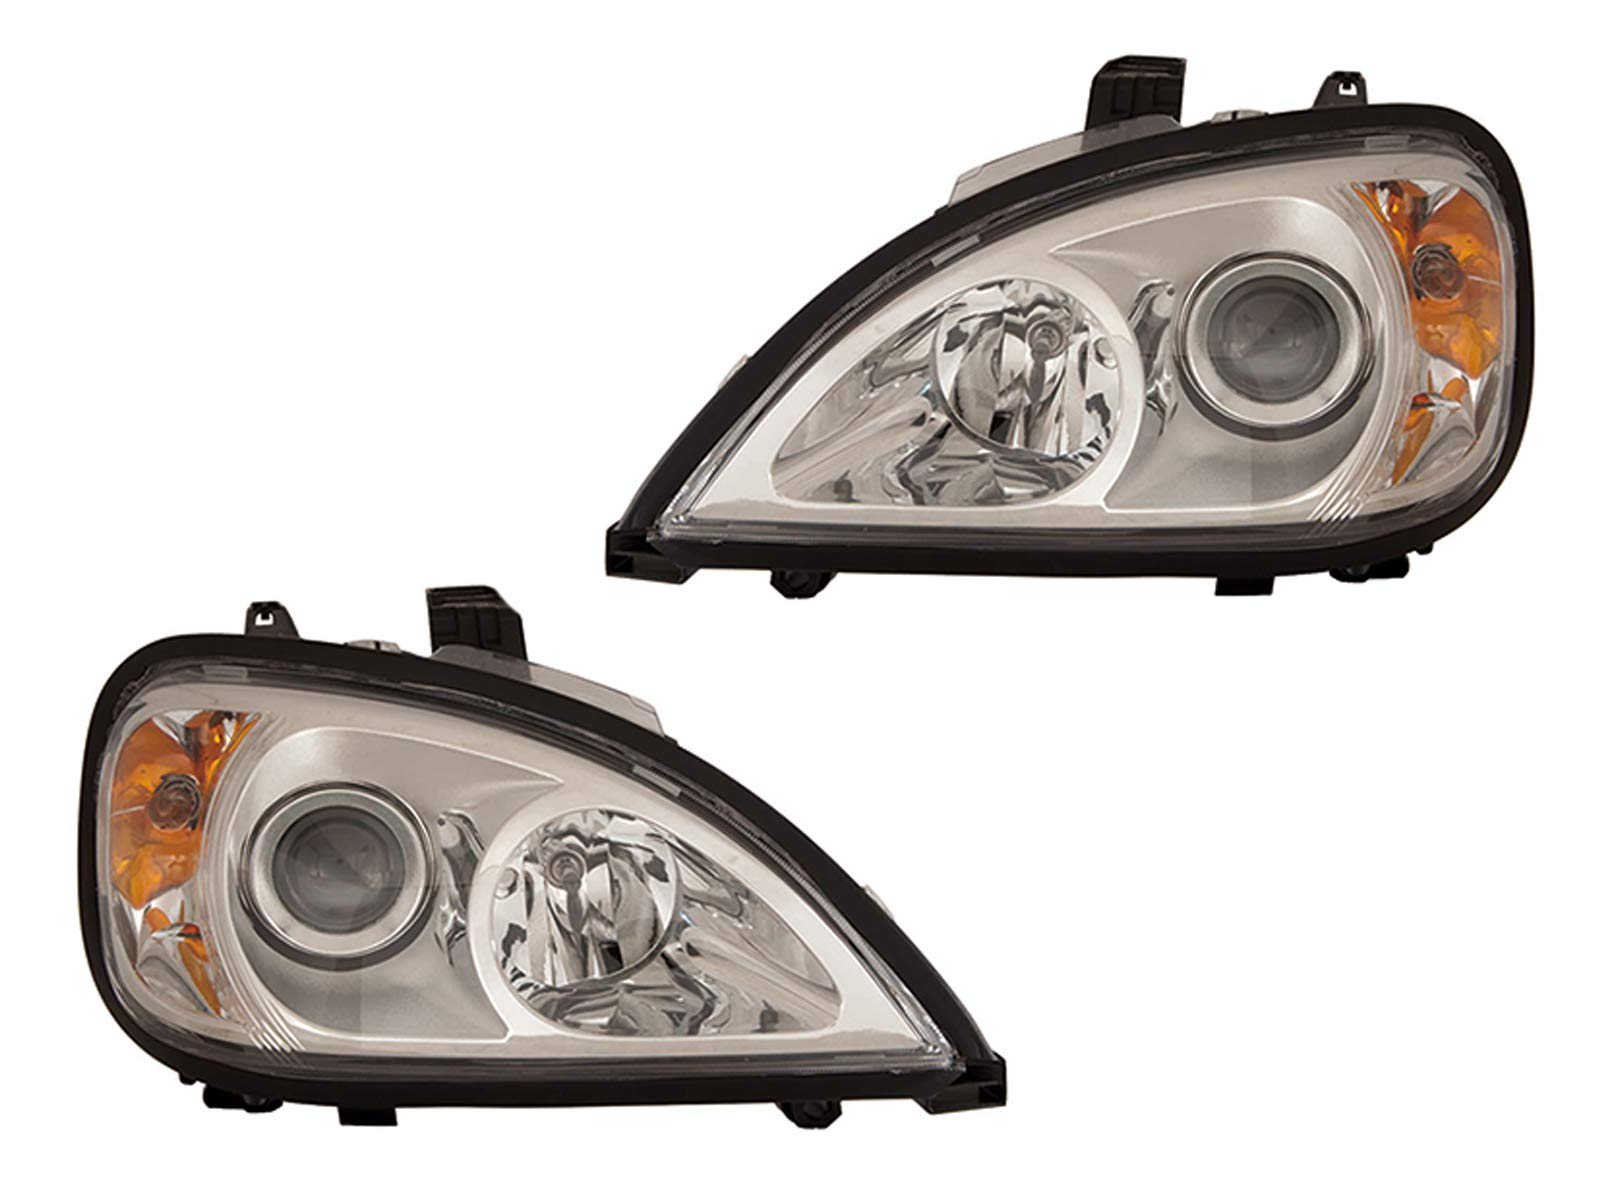 Freightliner Columbia Replacement Chrome Projector Headlights Headlamps Pair Set New by Headlights Depot